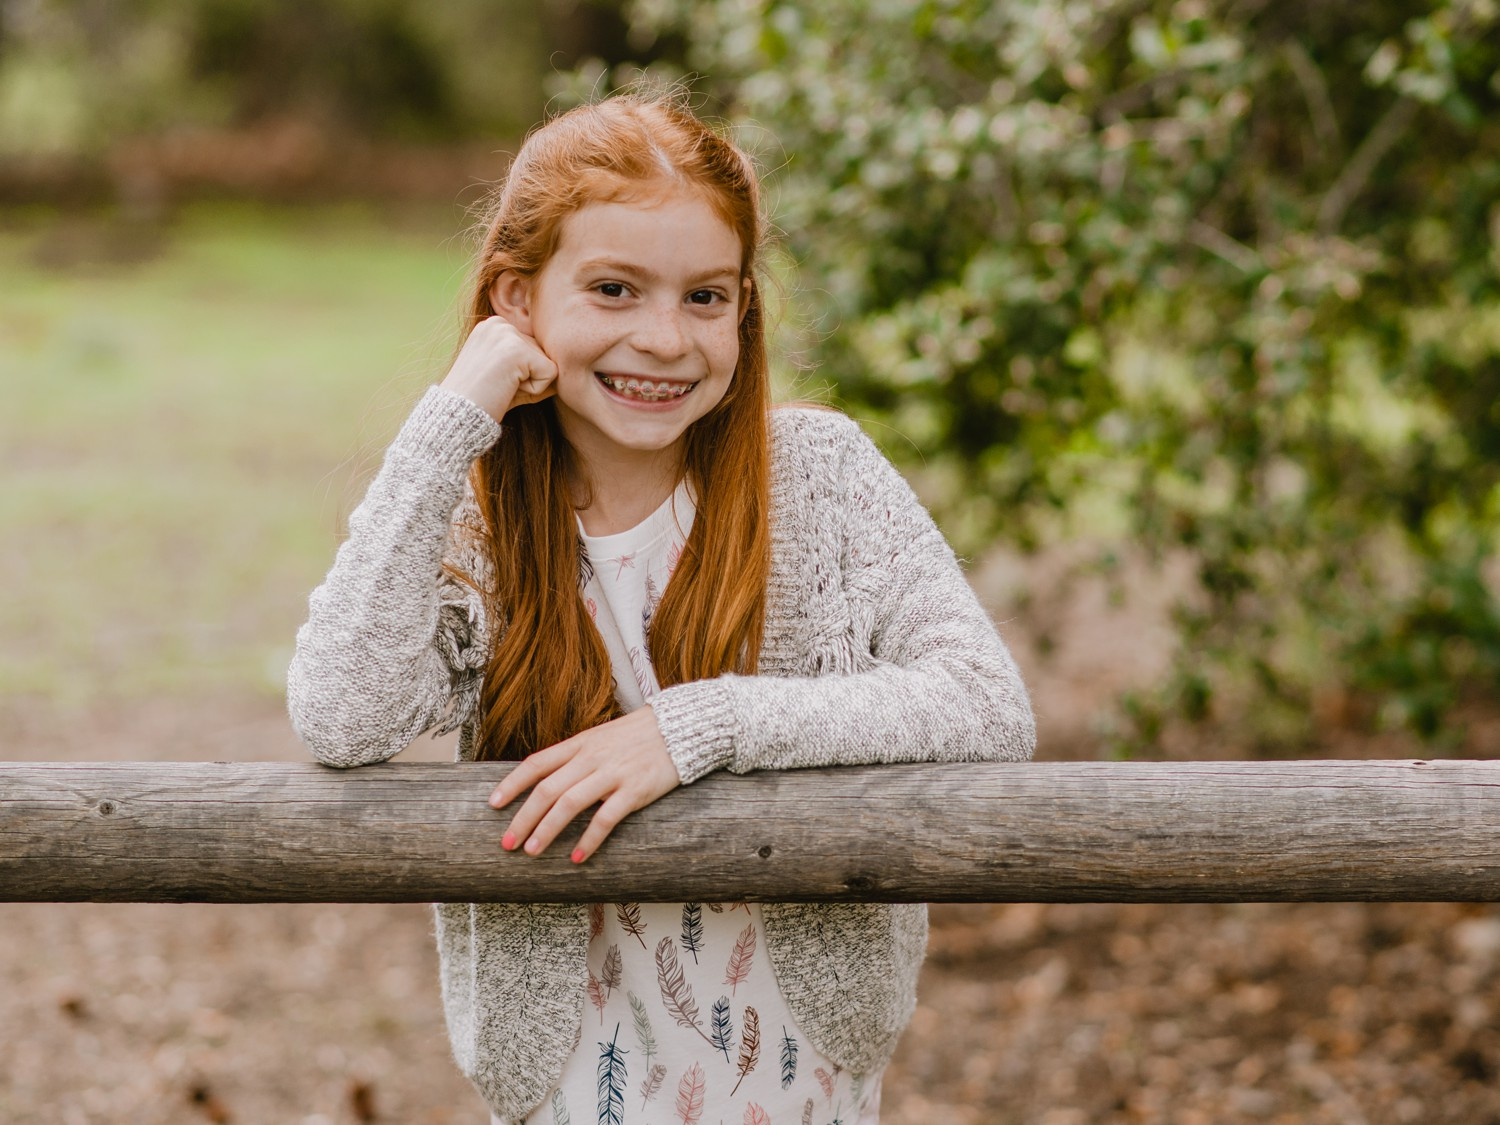 kids-redheads-family-photography-3_WEB